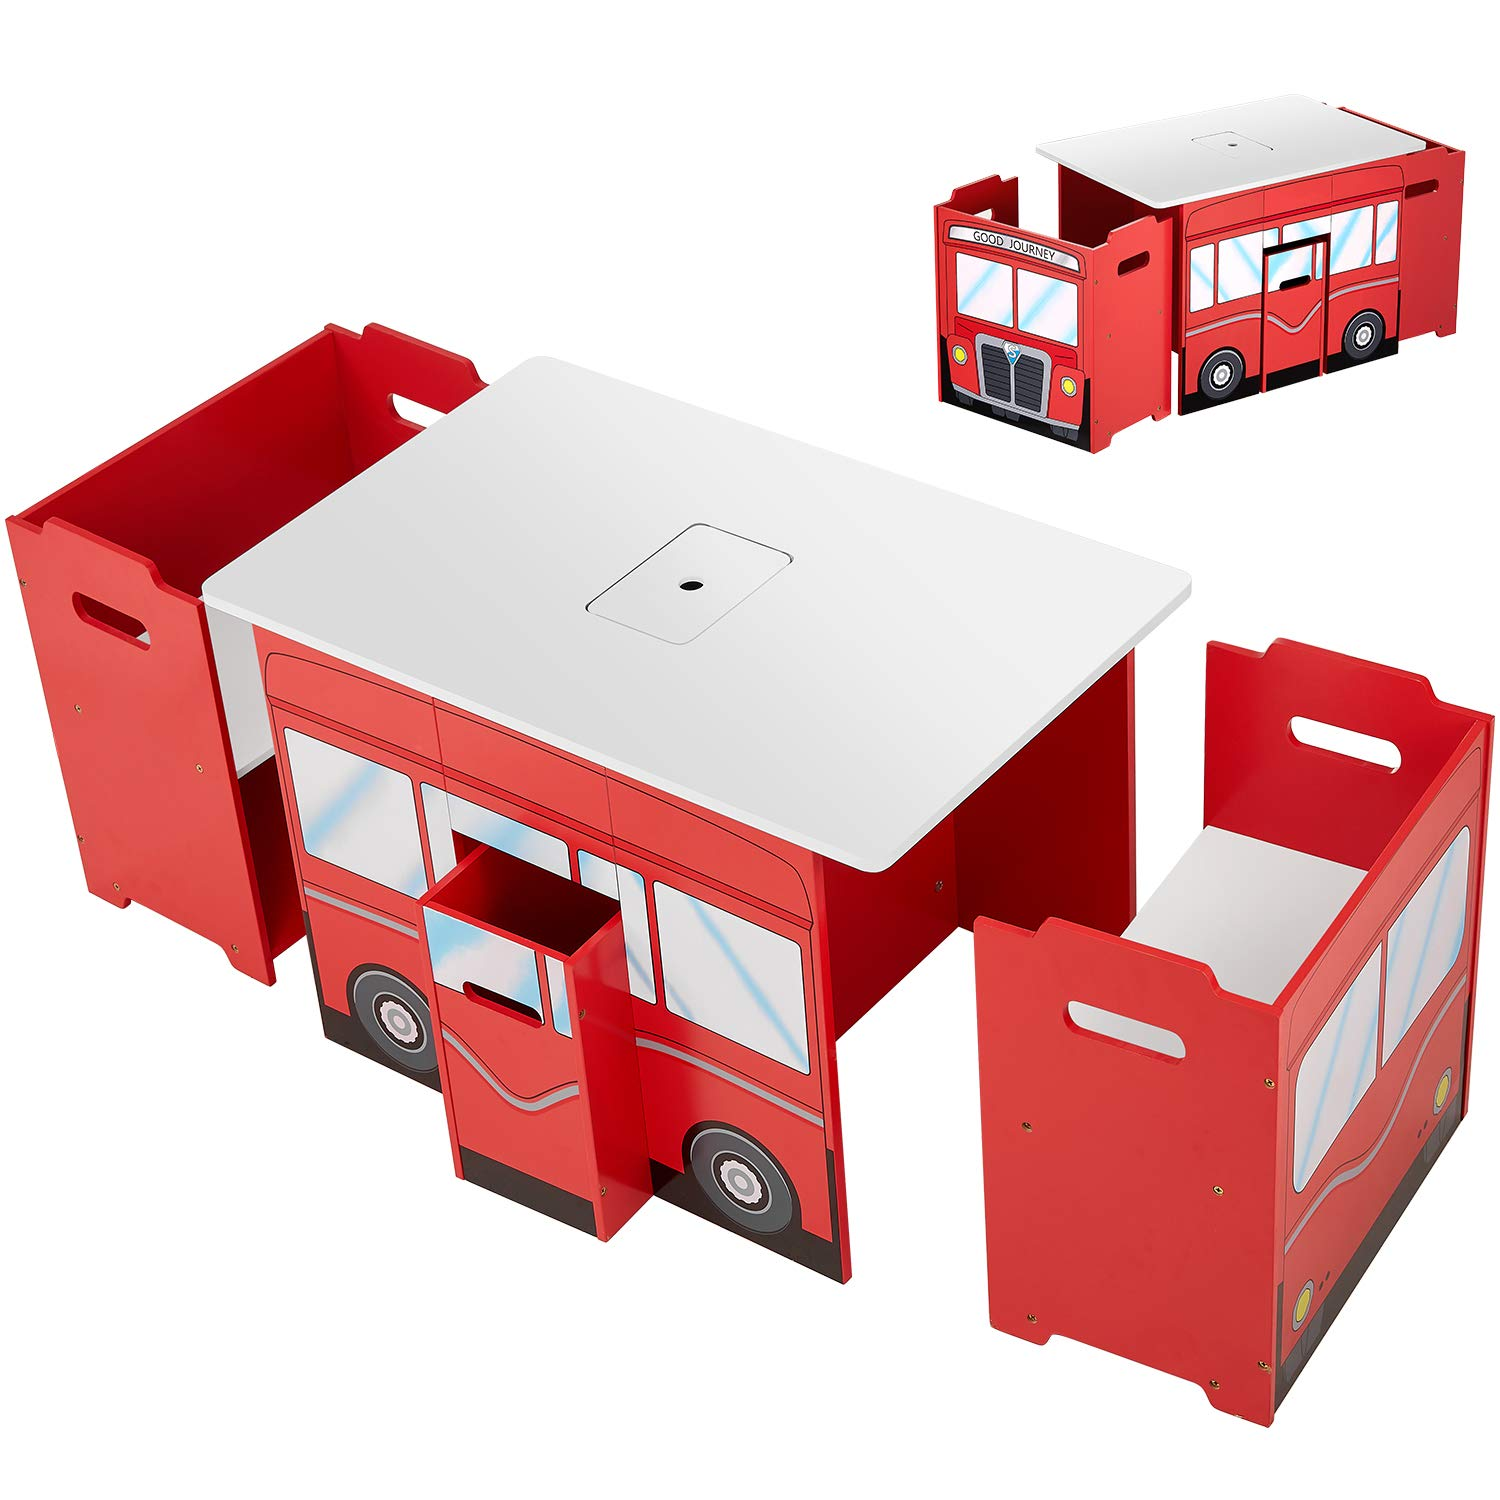 kealive Kids Table and Chairs Wooden Fire Truck Shape 4 Pieces Table and Chairs Set